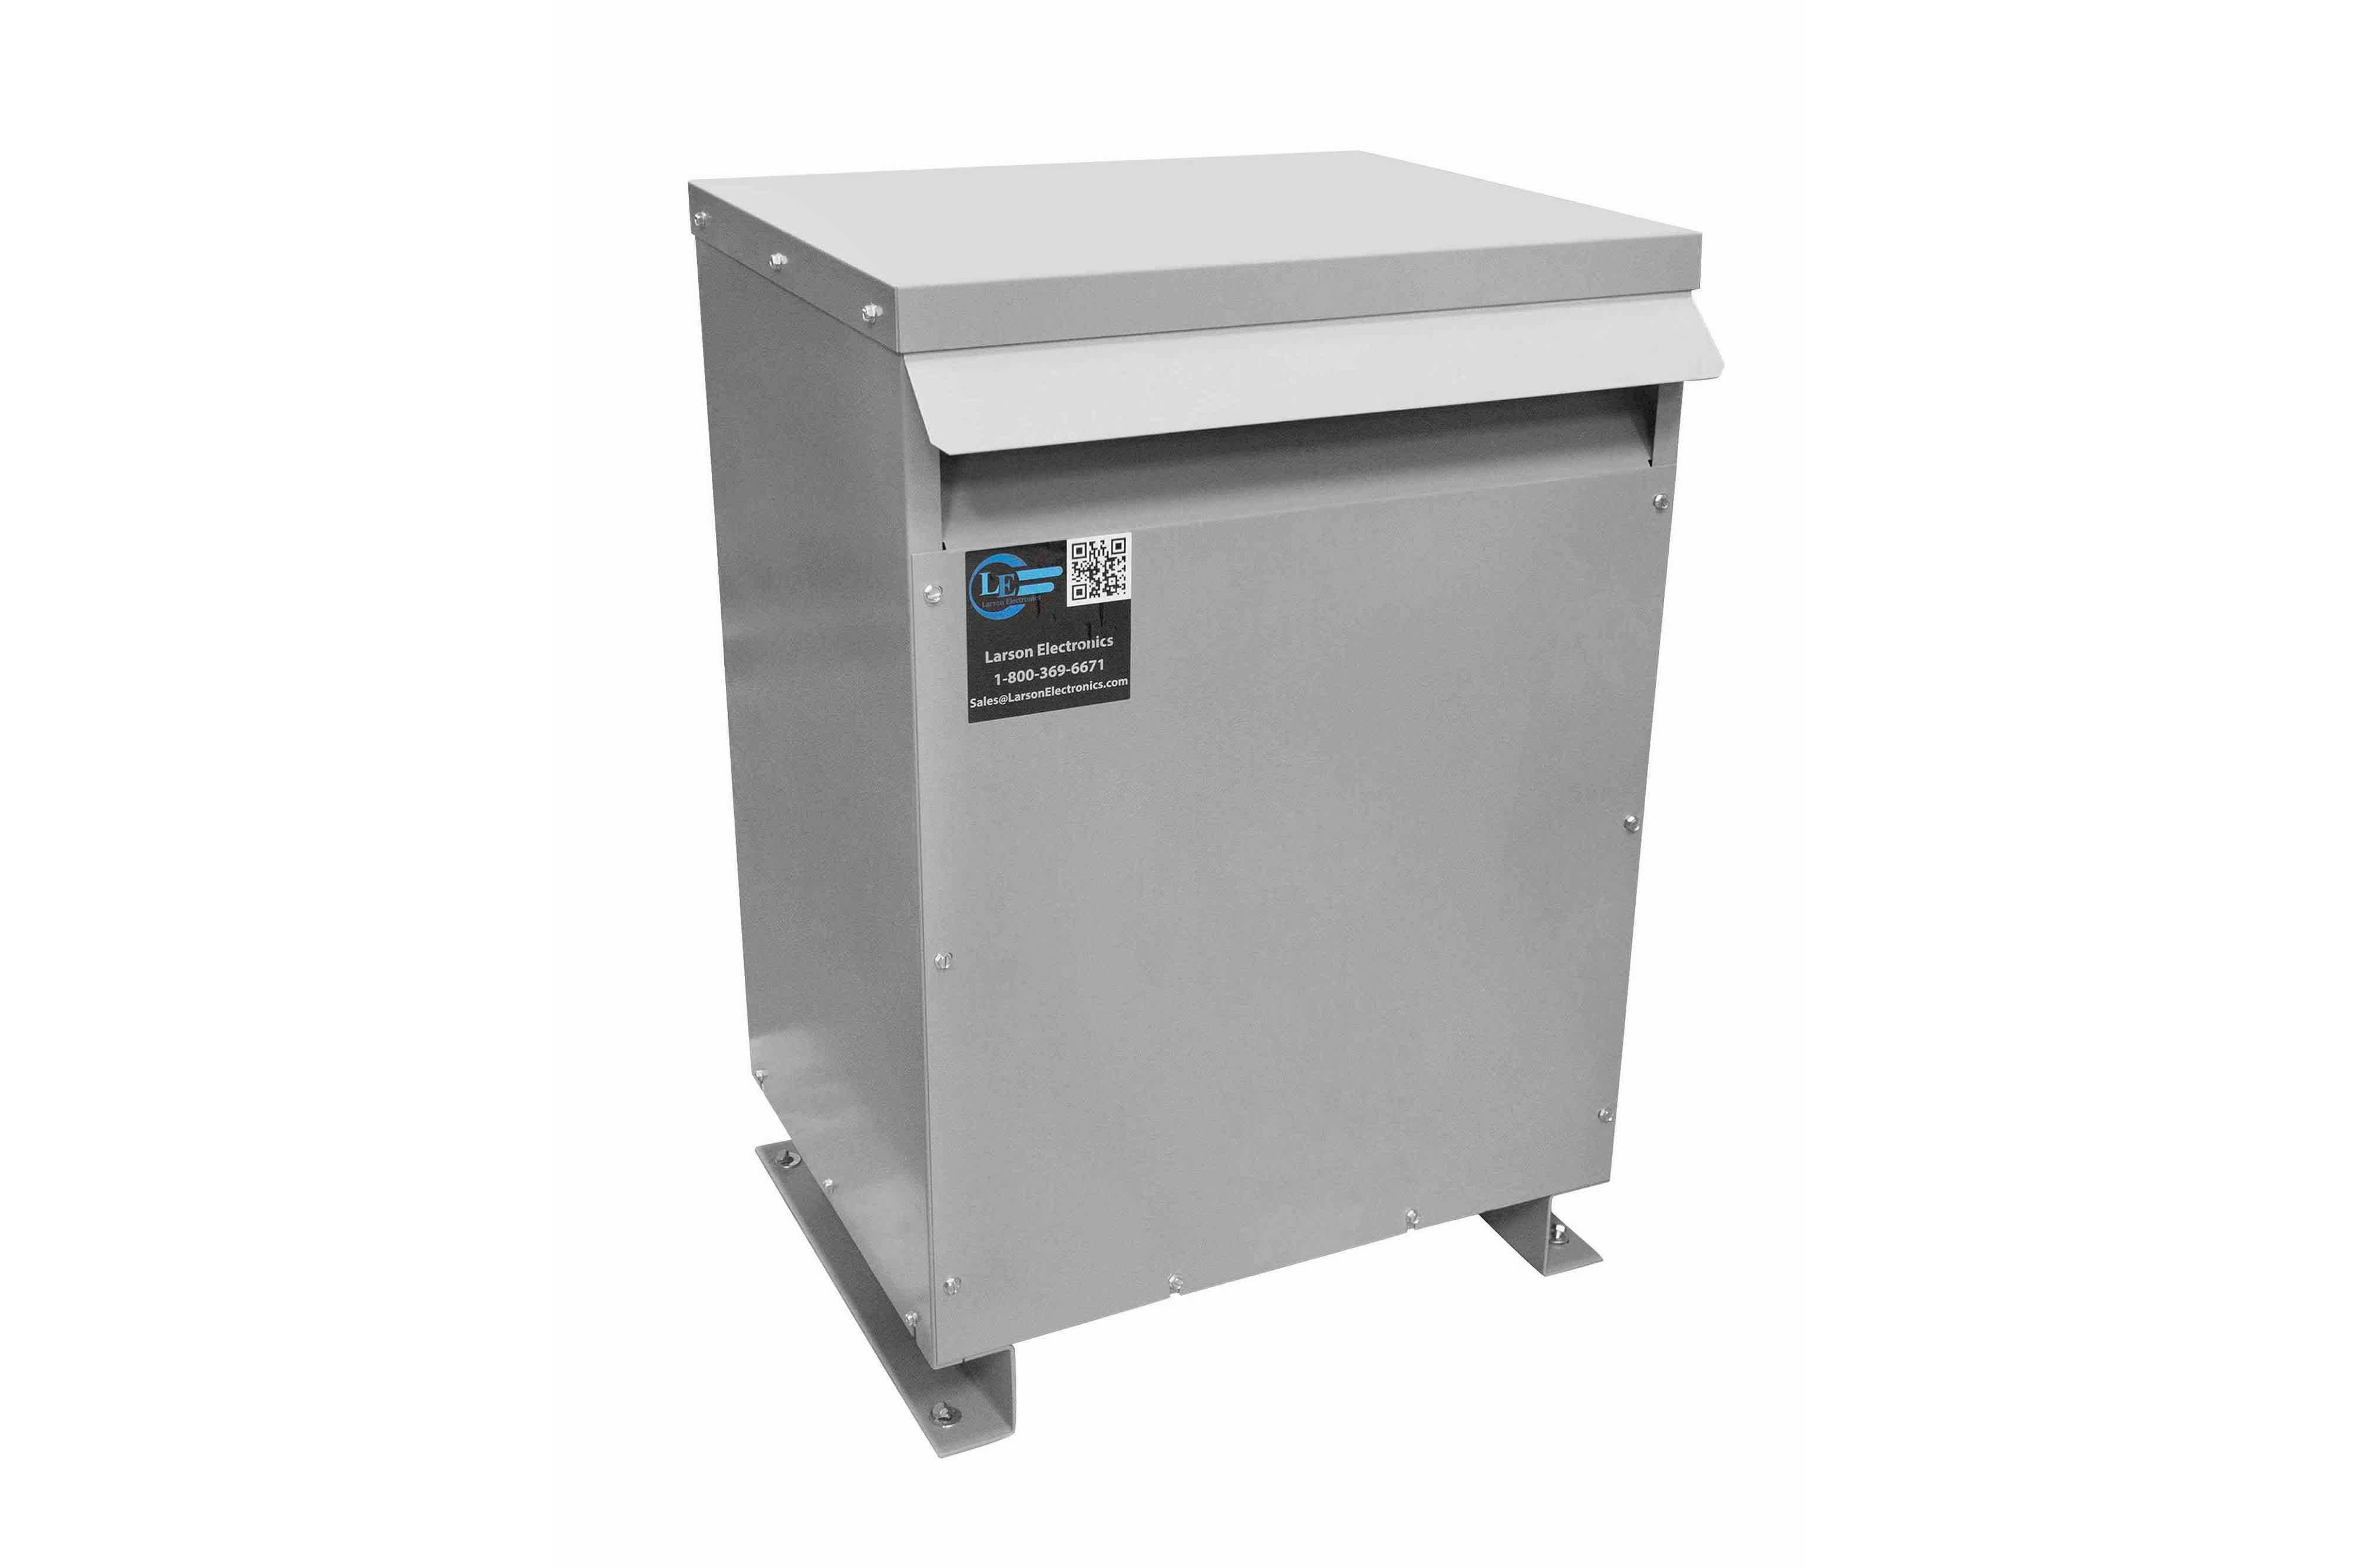 1000 kVA 3PH Isolation Transformer, 460V Wye Primary, 575Y/332 Wye-N Secondary, N3R, Ventilated, 60 Hz